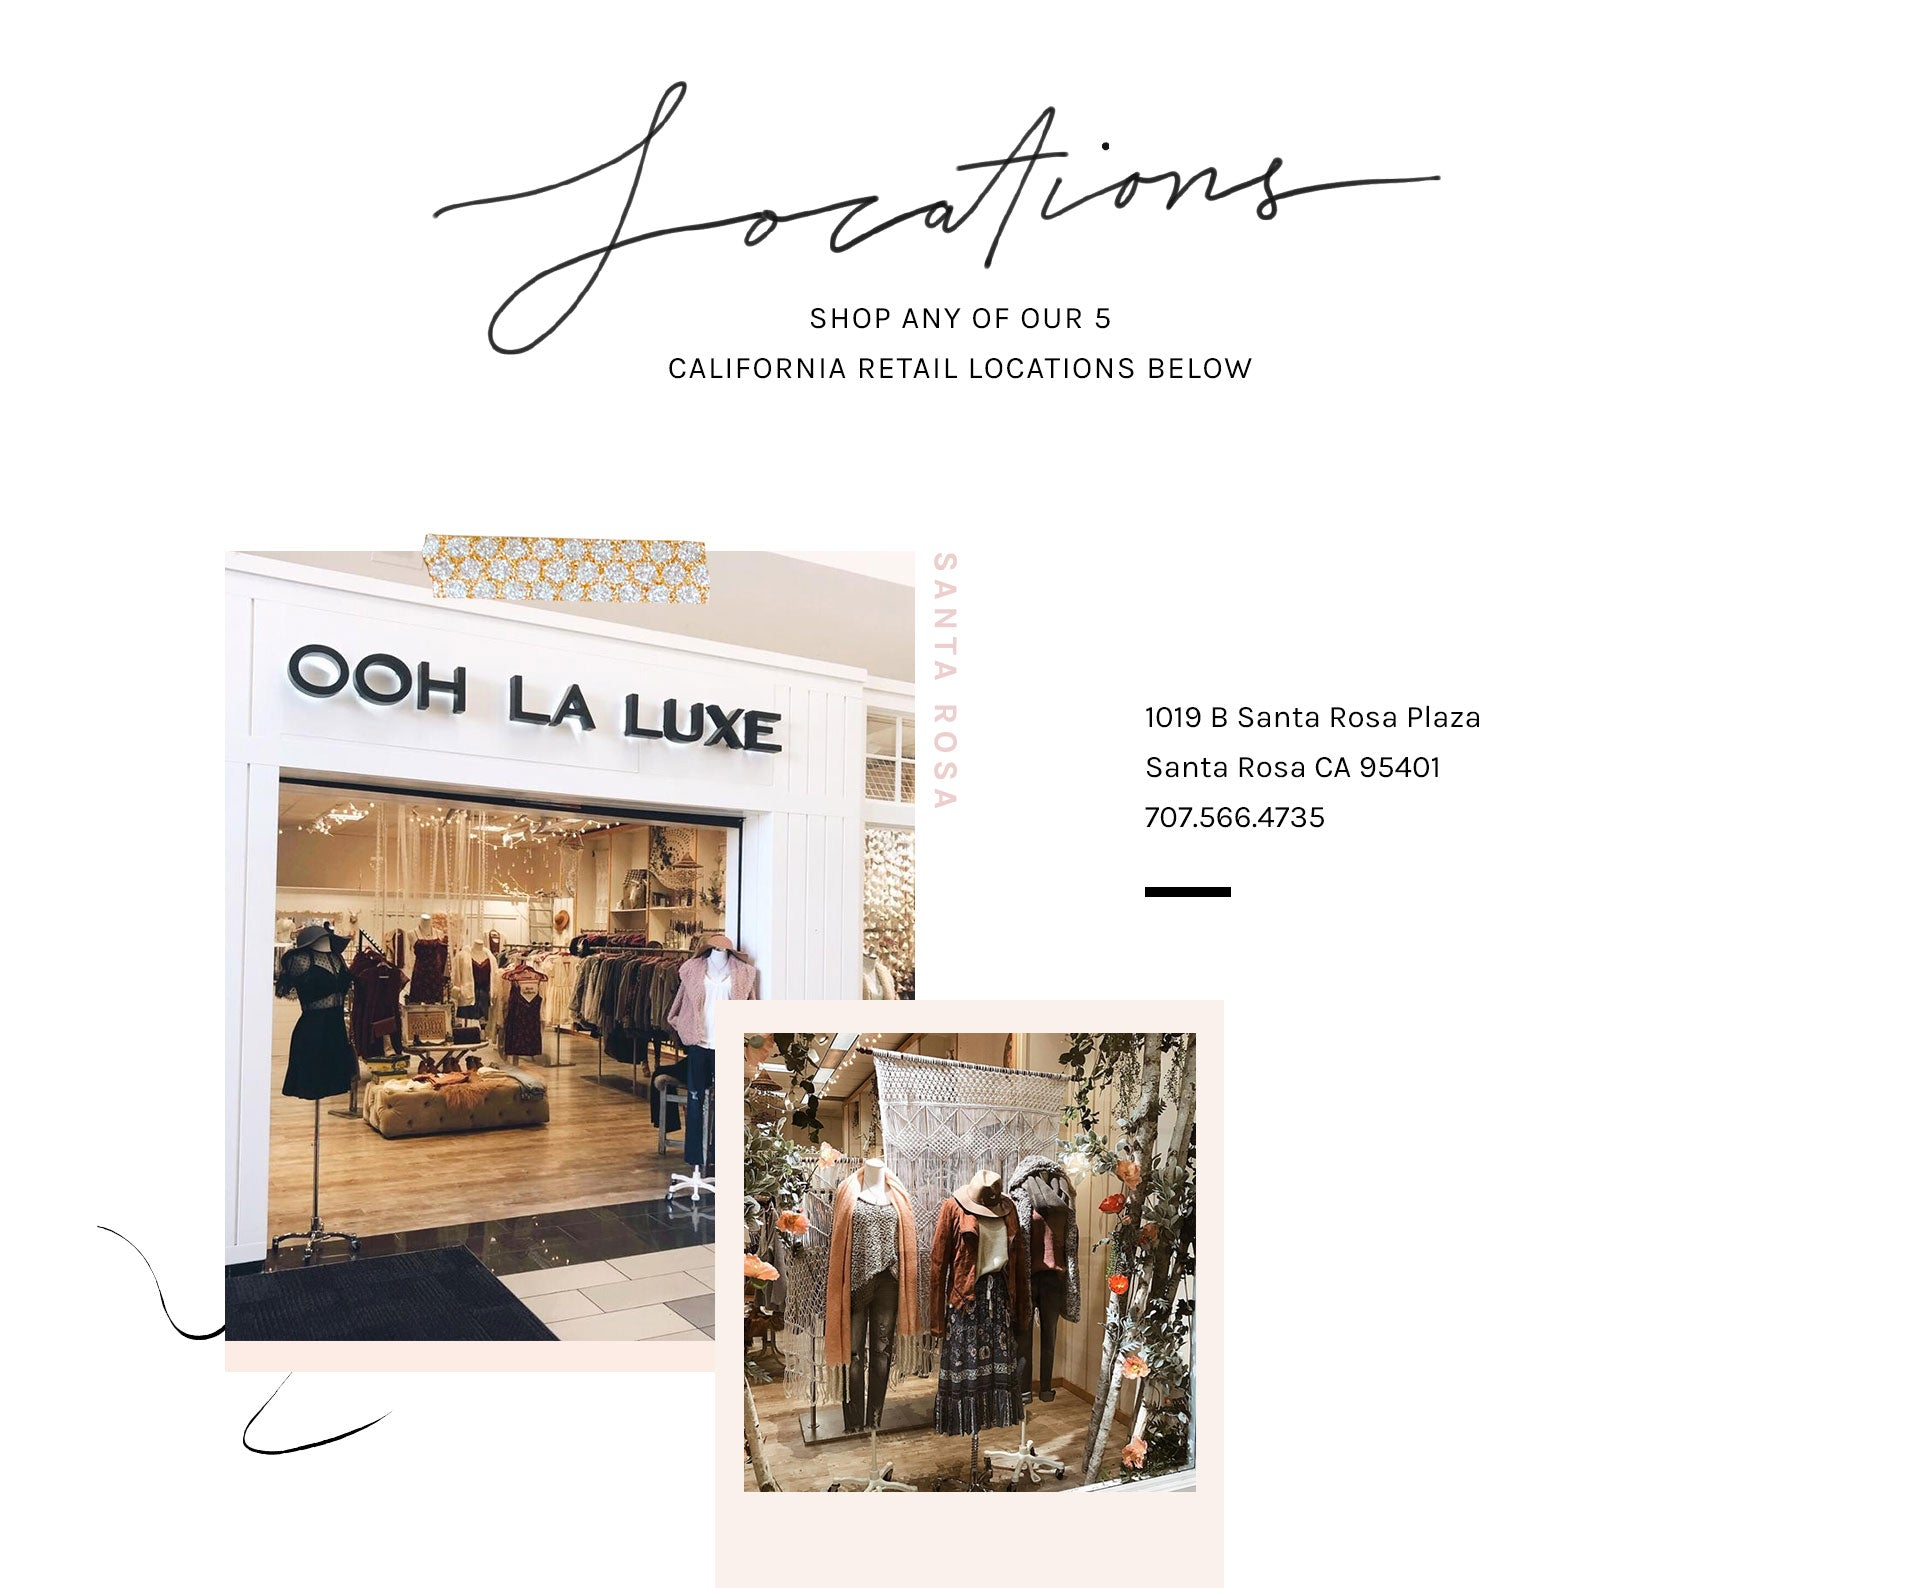 843988a9ab9 Store Locations for Women s Fashion Clothing – Ooh La Luxe